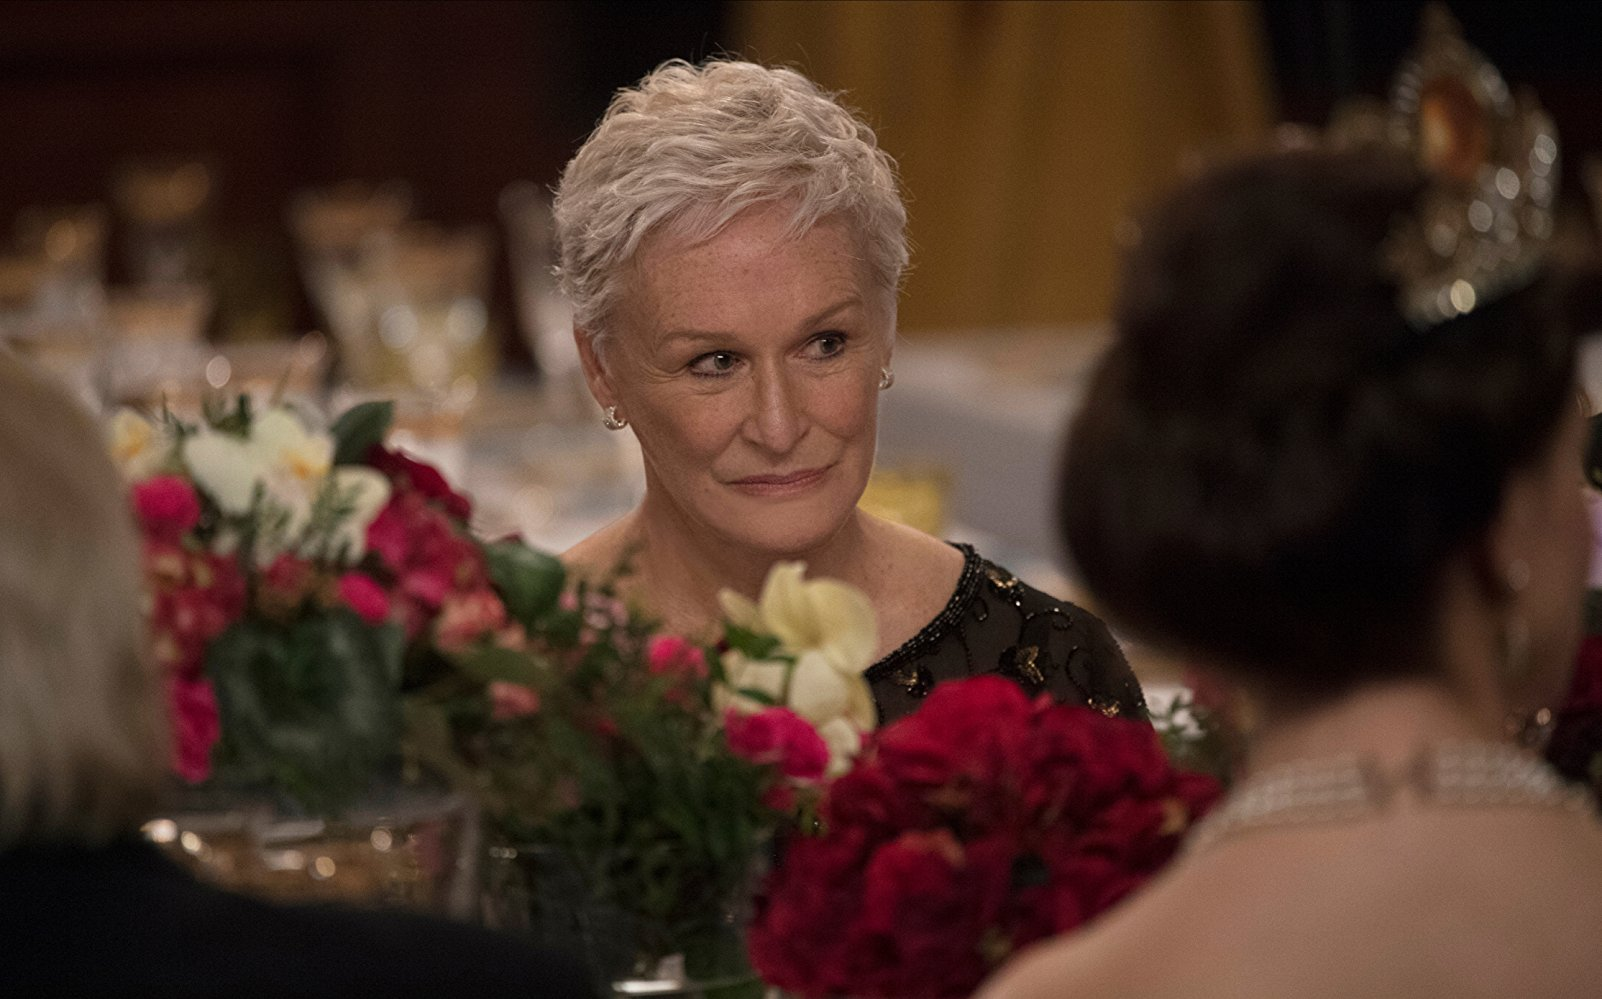 MEILLEURE ACTRICE - DRAME   Glenn Close – The Wife  Lady Gaga – A Star is Born Nicole Kidman – Destroyer Melissa McCarthy – Can You Ever Forgive Me ? Rosamund Pike – A Private War